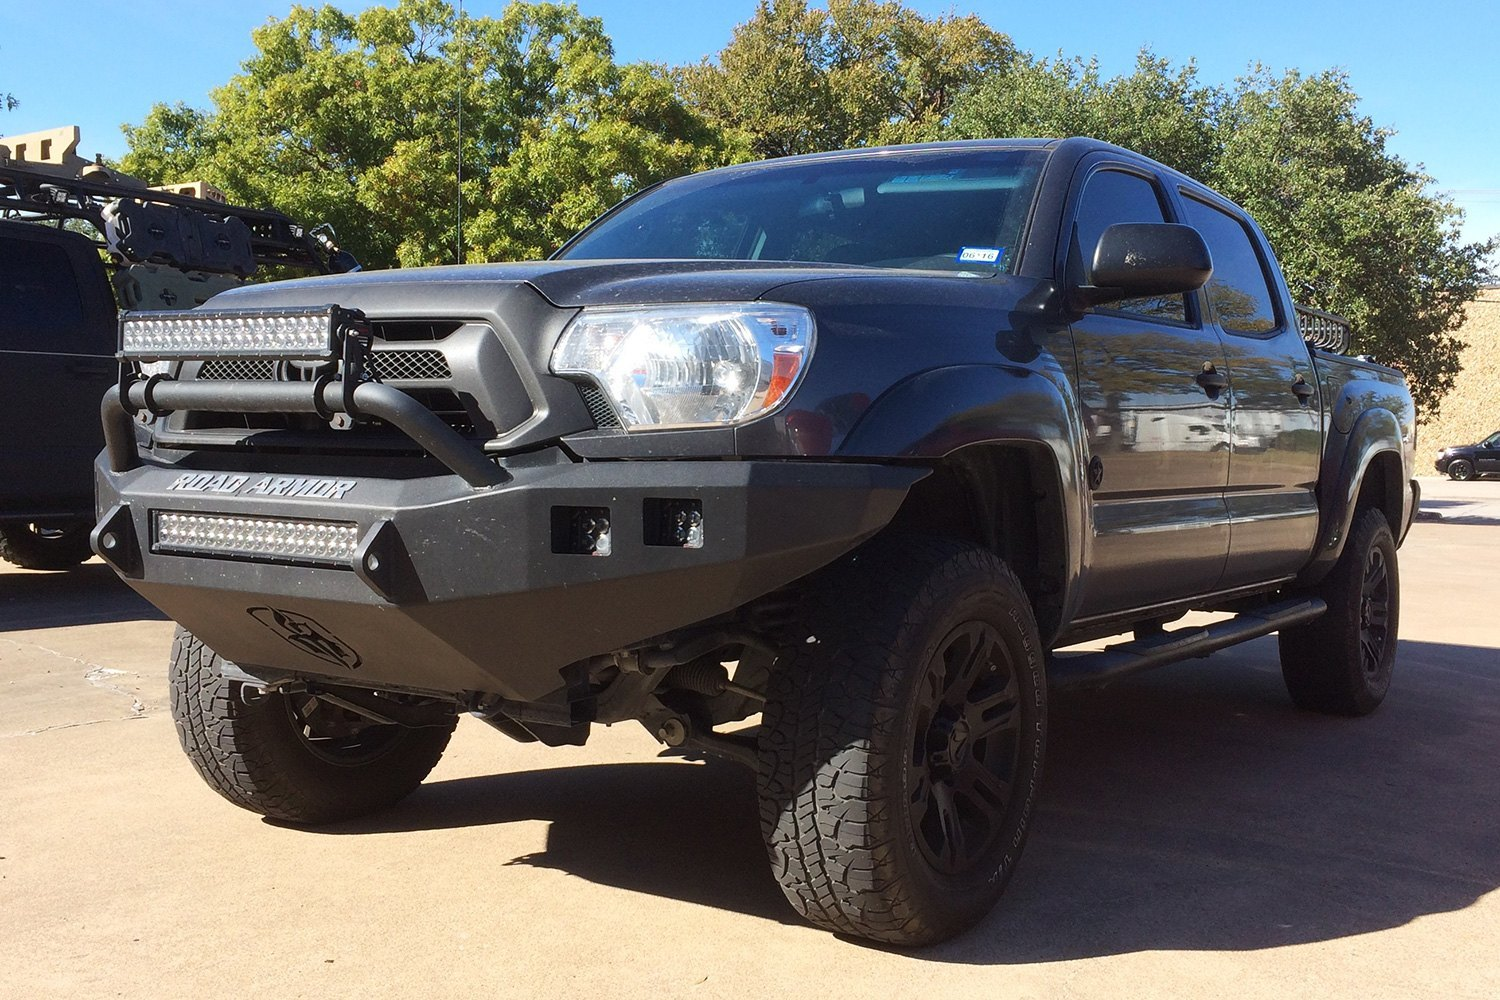 Toyota Tacoma 2015 >> Road Armor® - Toyota Tacoma 2015 Stealth Series Full Width Front HD Bumper with Pre-Runner Guard